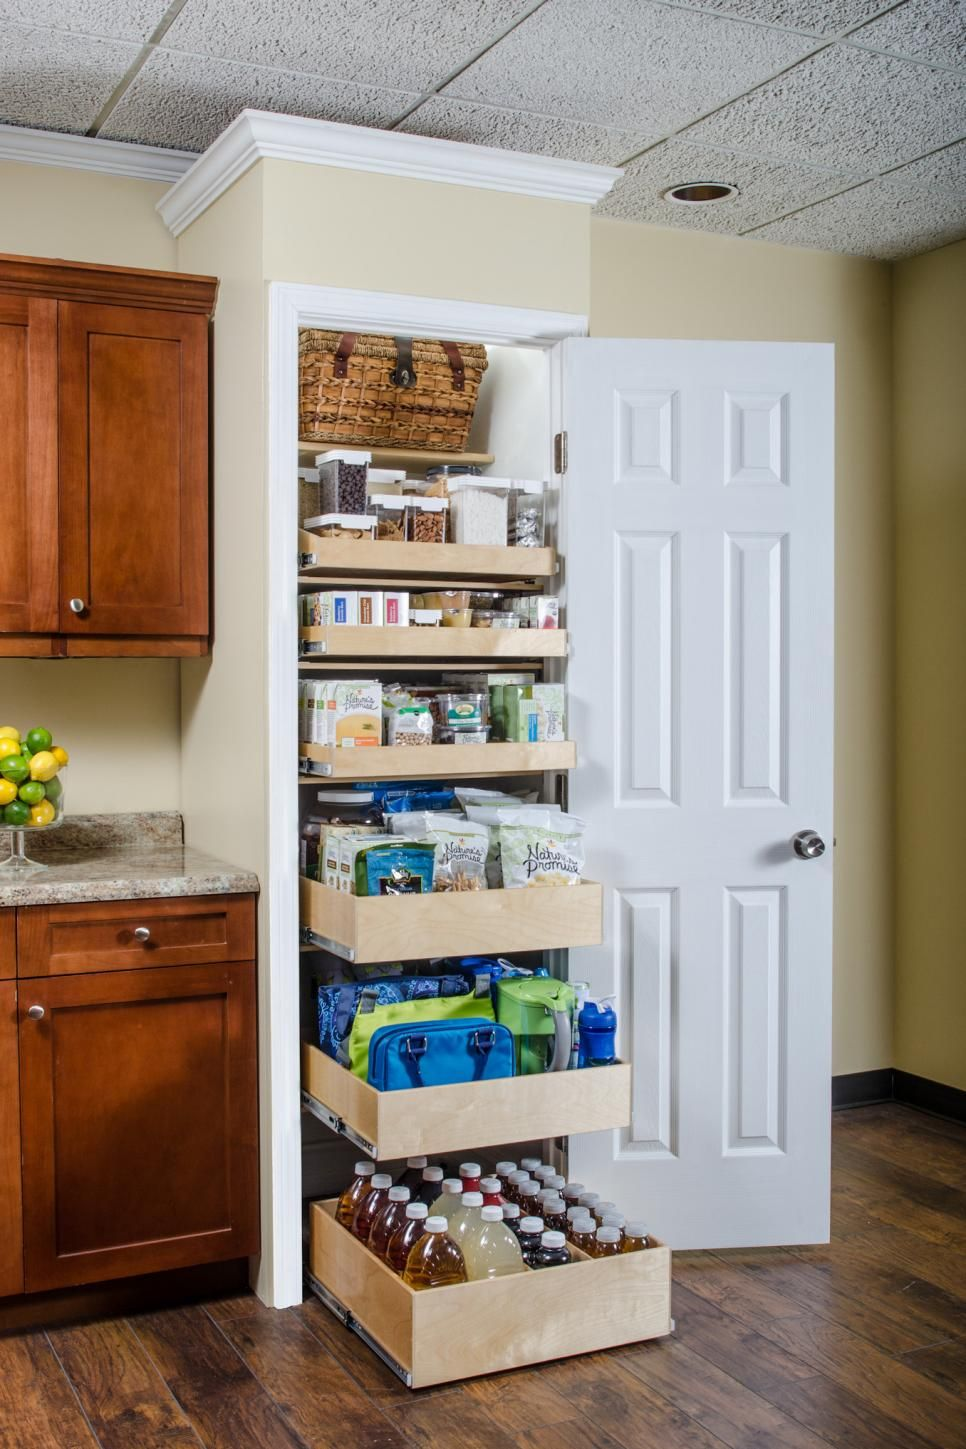 pantry effect weisbrot sbo img b the simply kitchens pantrys pantries organized